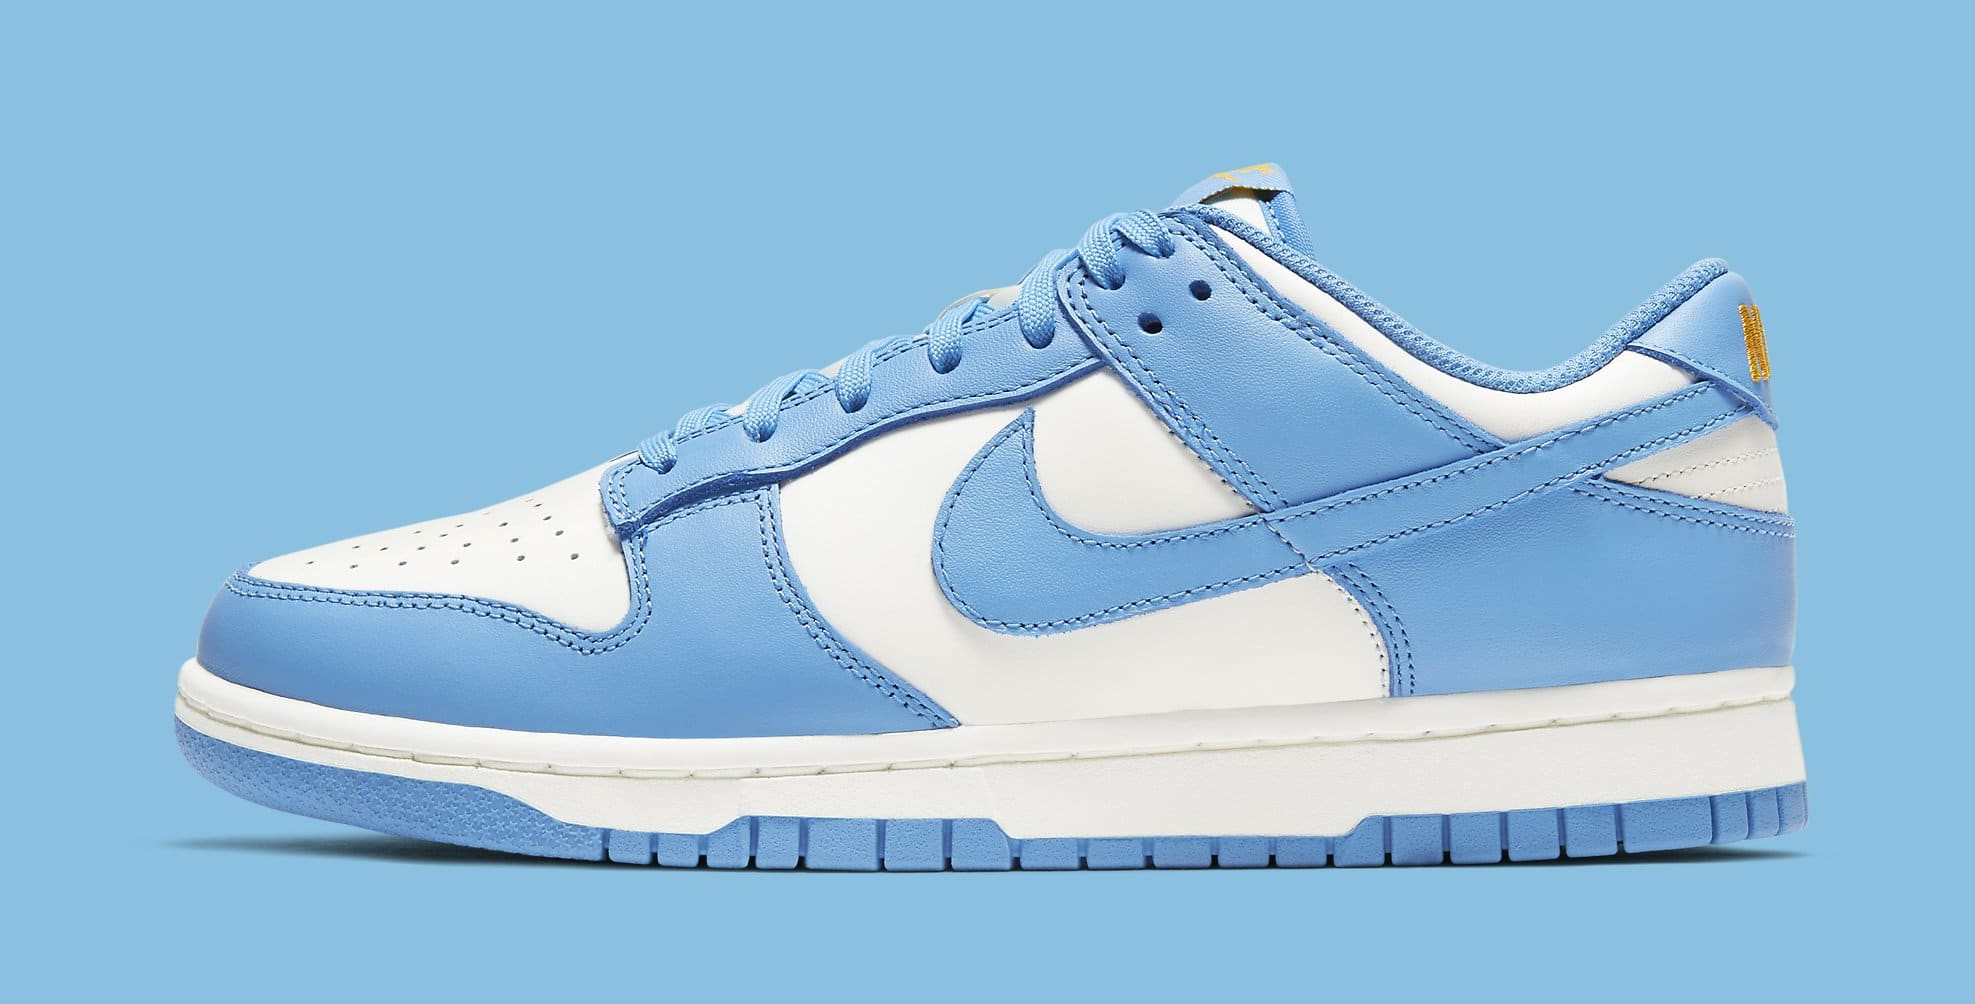 Nike Dunk Low Women's 'Coast' DD1503-100 Lateral